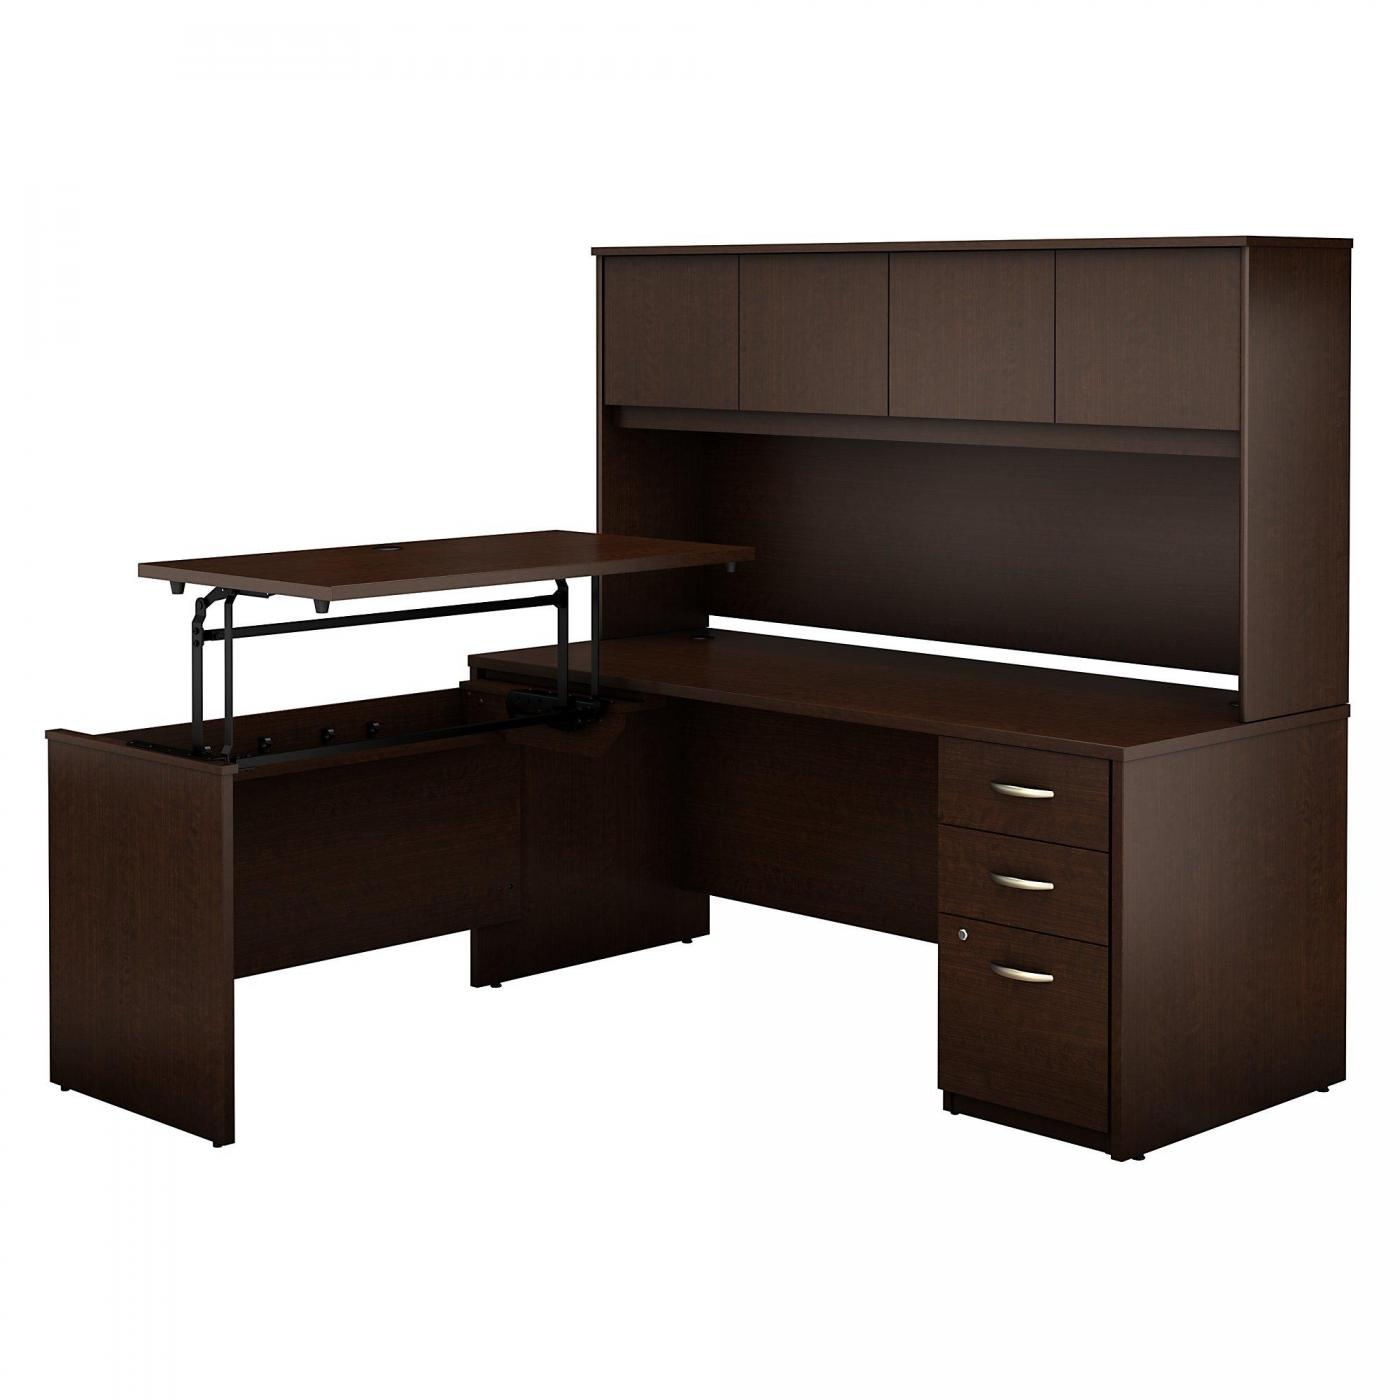 <font color=#c60><b>BUSH BUSINESS FURNITURE SERIES C ELITE 72W X 30D 3 POSITION SIT TO STAND L SHAPED DESK WITH HUTCH AND 3 DRAWER FILE CABINET. FREE SHIPPING. VIDEO:</font></b></font></b>